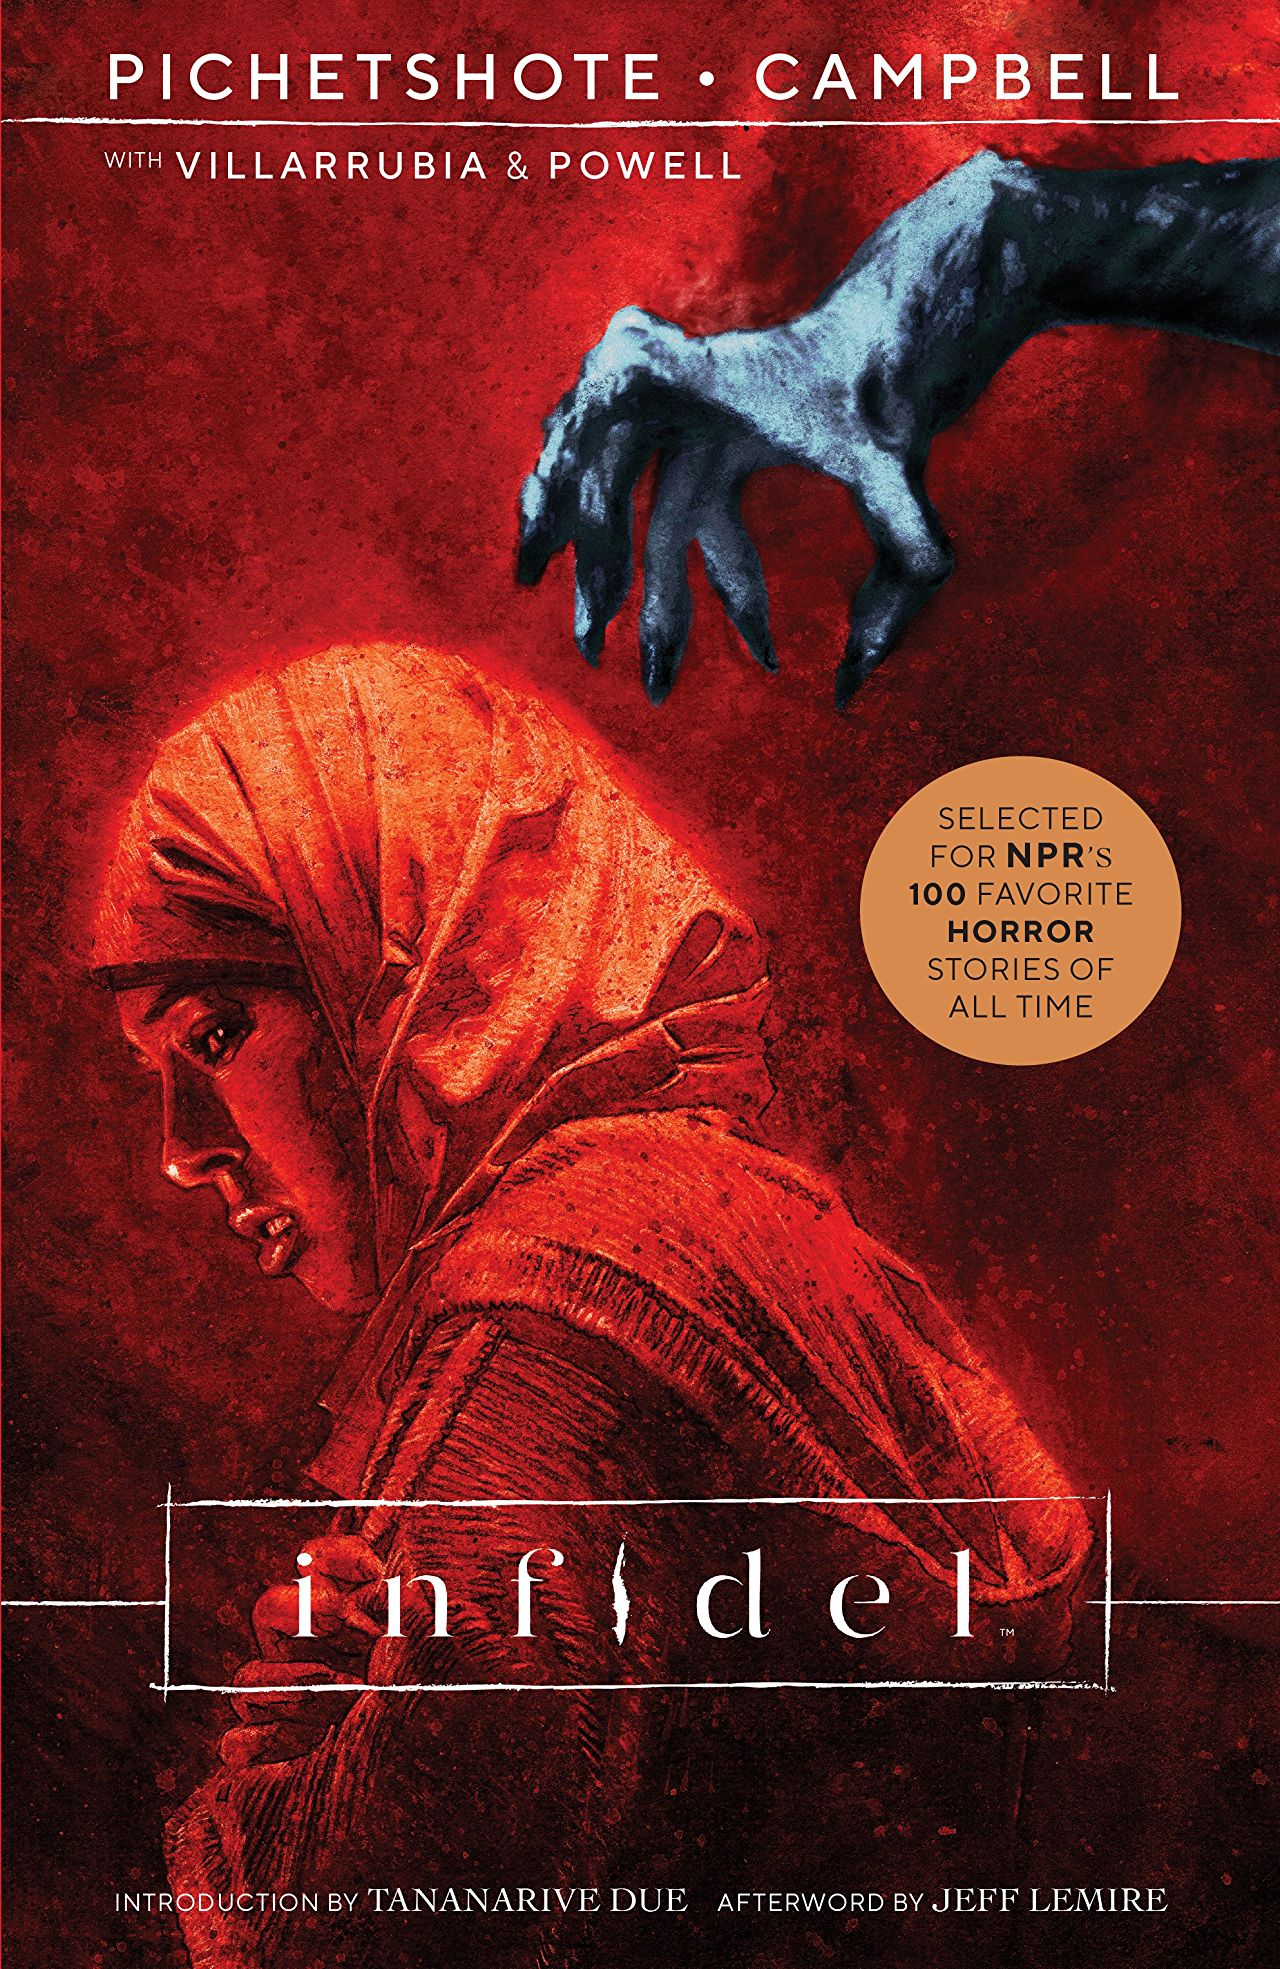 'Infidel' is one of the scariest horror comics ever published